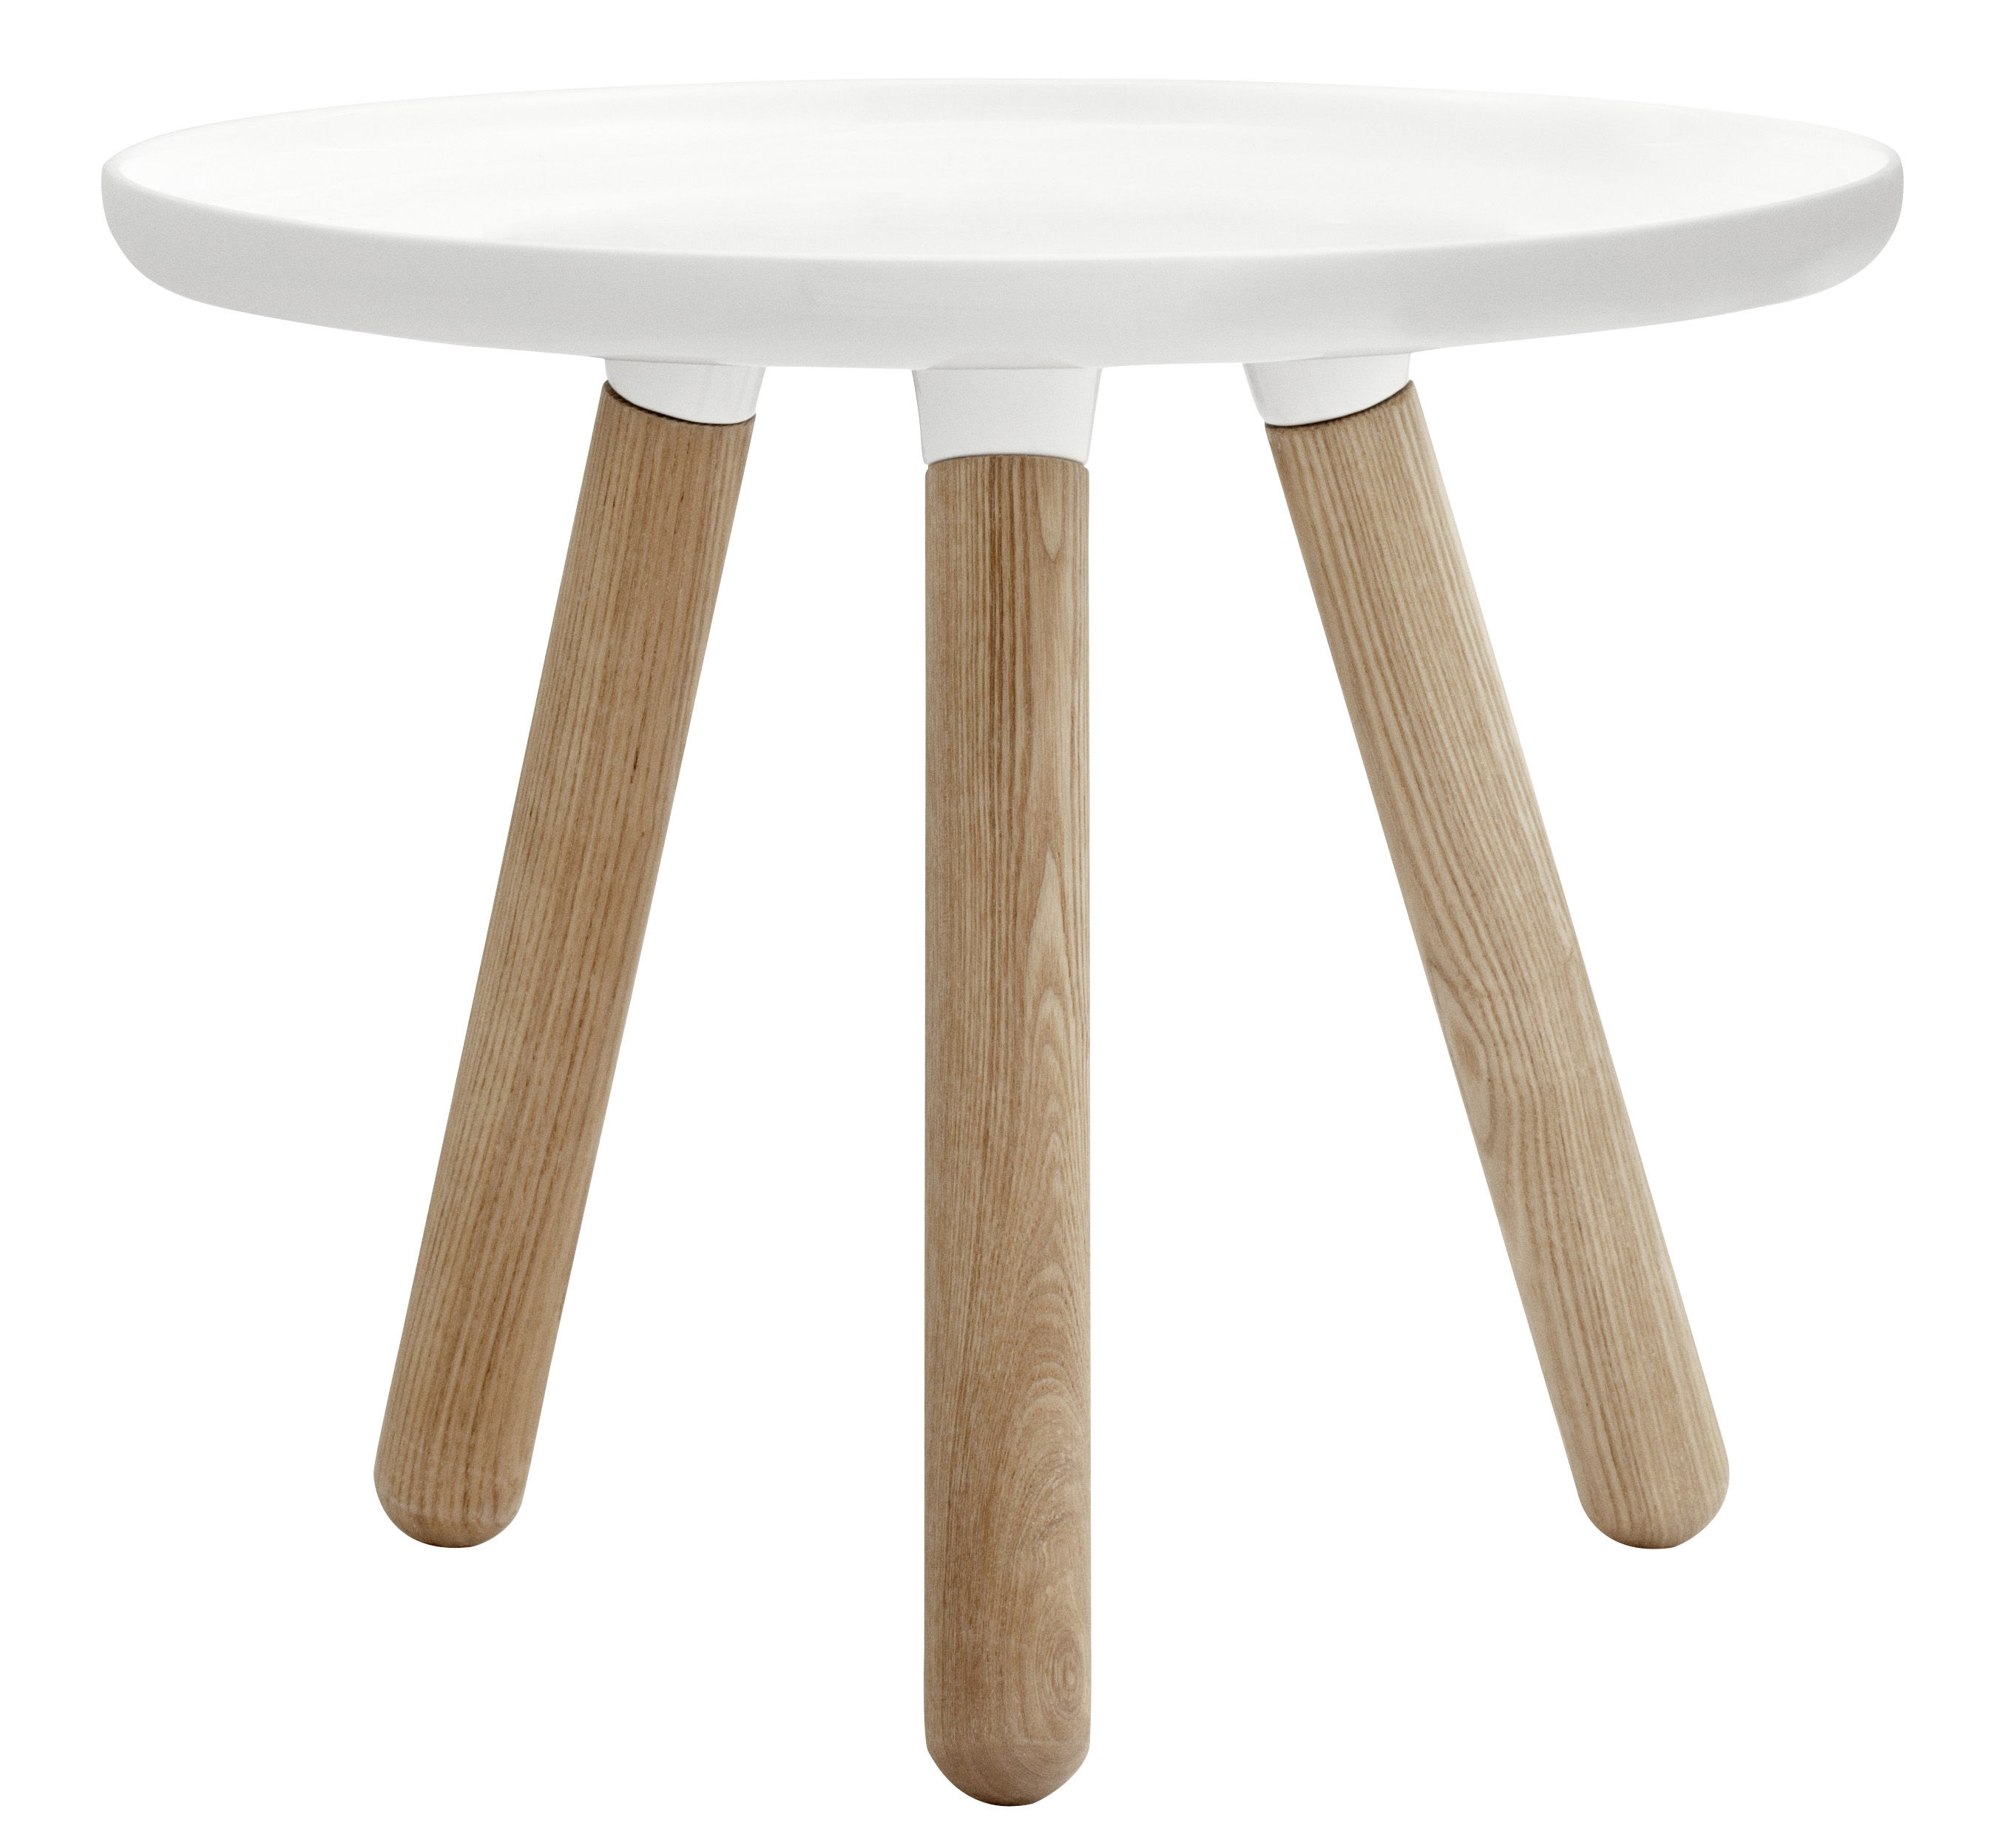 Furniture - Coffee Tables - Tablo Small Coffee table - Ø 50 cm by Normann Copenhagen - White - Composite material, Natural ash